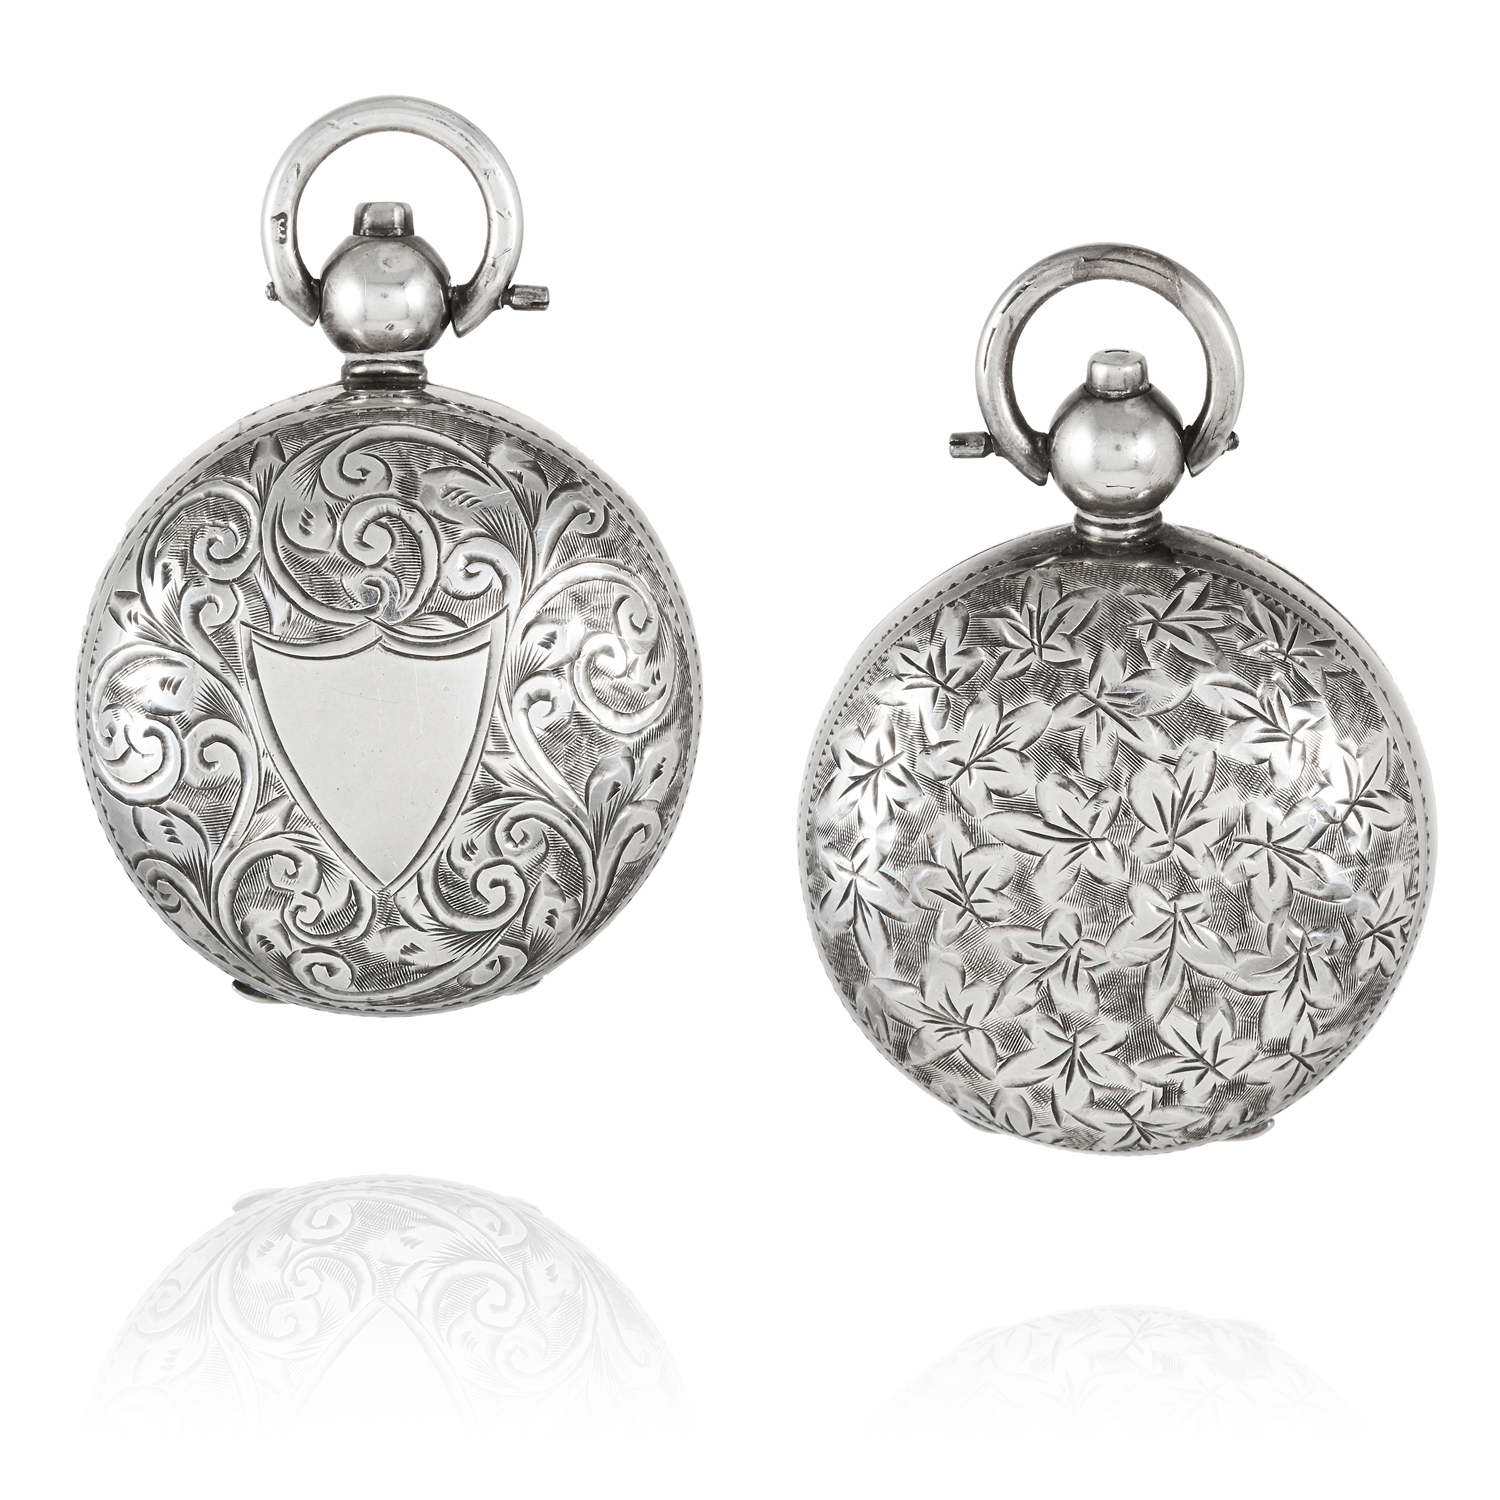 Los 14 - TWO ANTIQUE SILVER SOVEREIGN HOLDERS, EARLY 20TH CENTURY circular form, one with bright cut